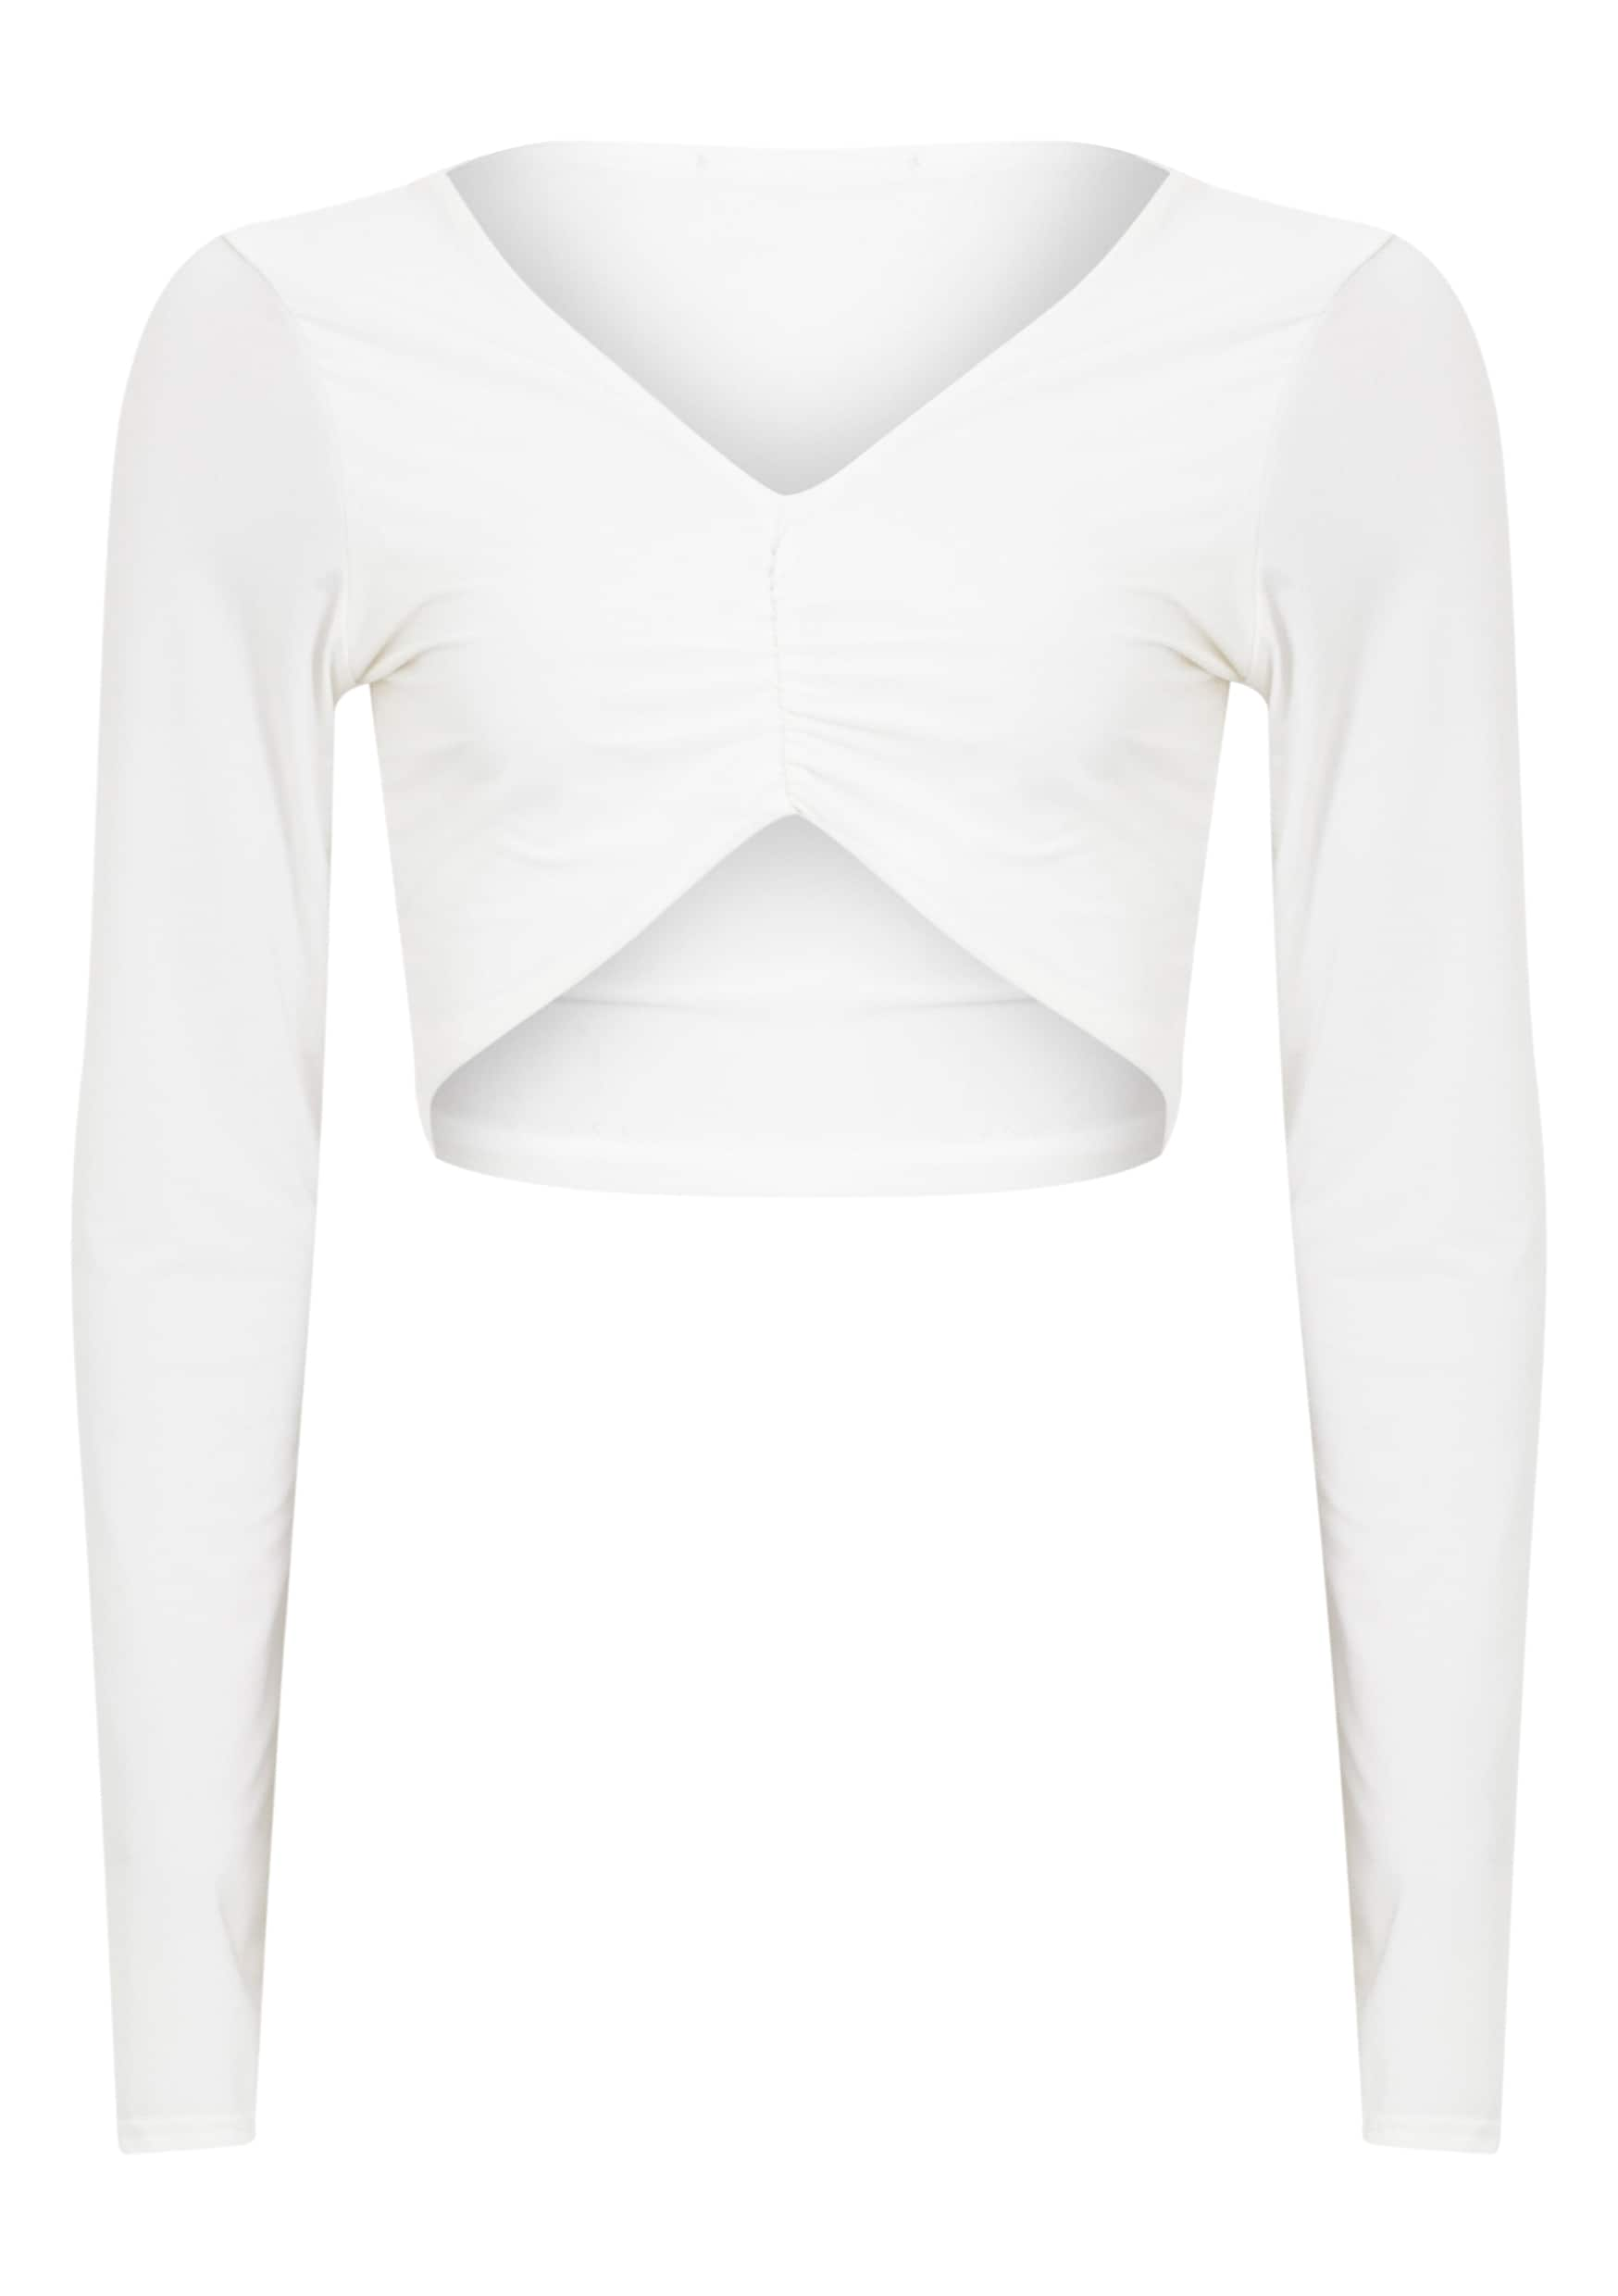 Maizie Cream Slinky Ruched Crop Top 5